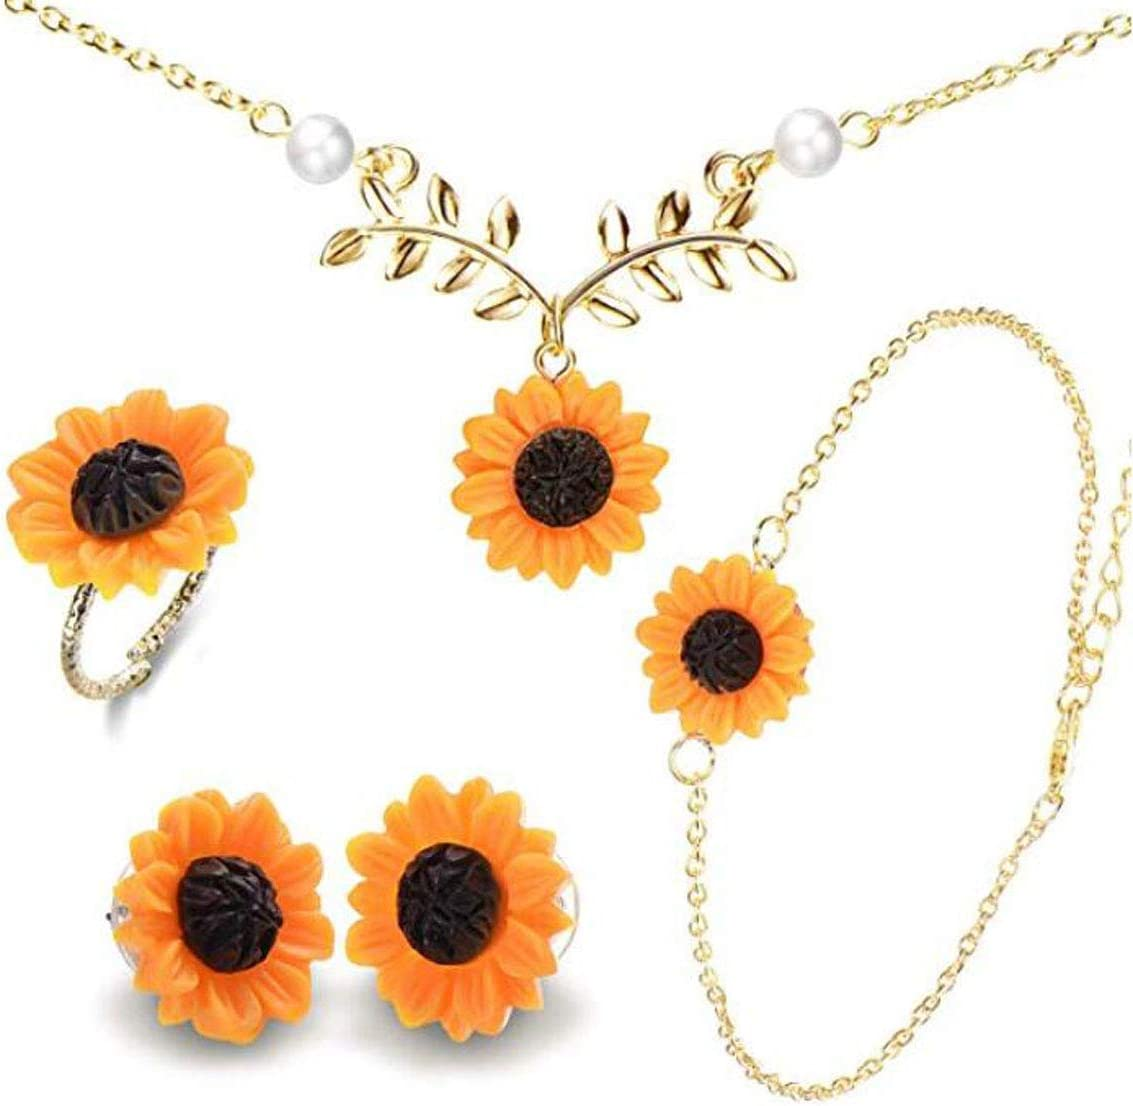 Set of 5 Sunflower Faux Pearl Leaf Chain Resin Boho Petal Pendant Necklace with Sunflower Bracelet Earrings Ring for Women Jewelry Accessories (Gold)